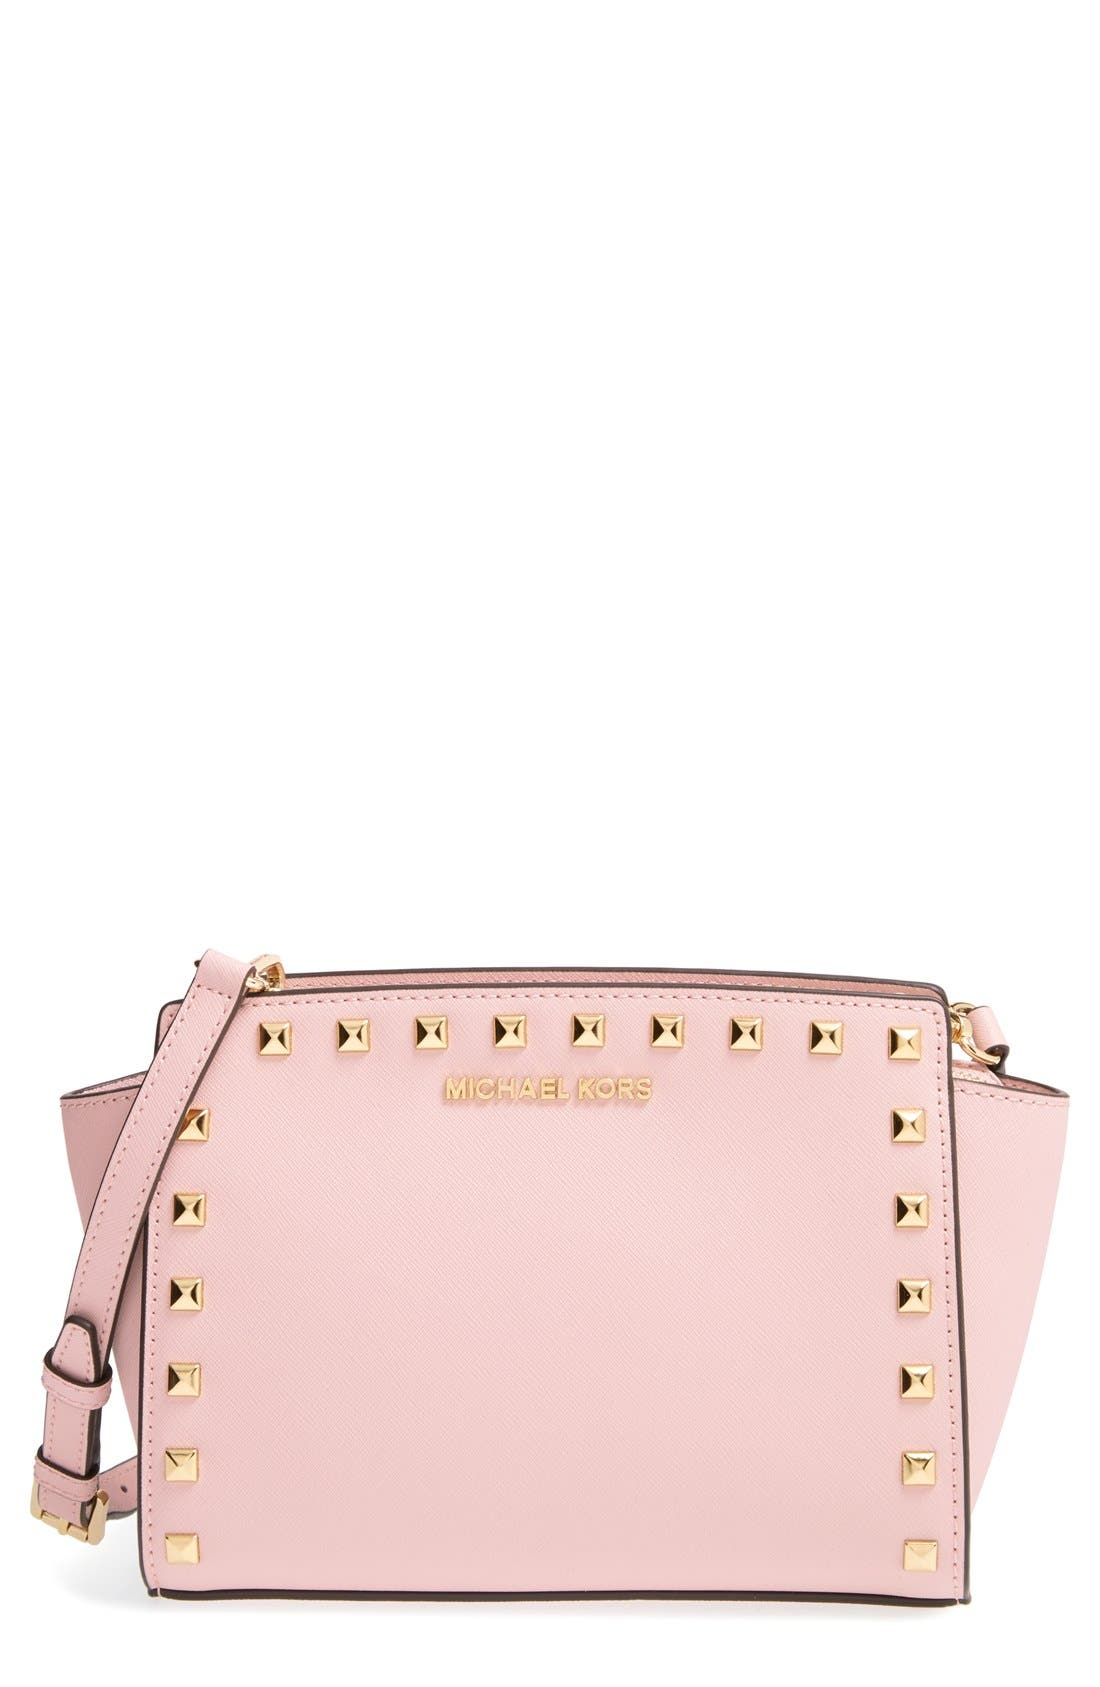 'Selma - Stud' Saffiano Leather Crossbody Bag,                         Main,                         color, Blossom